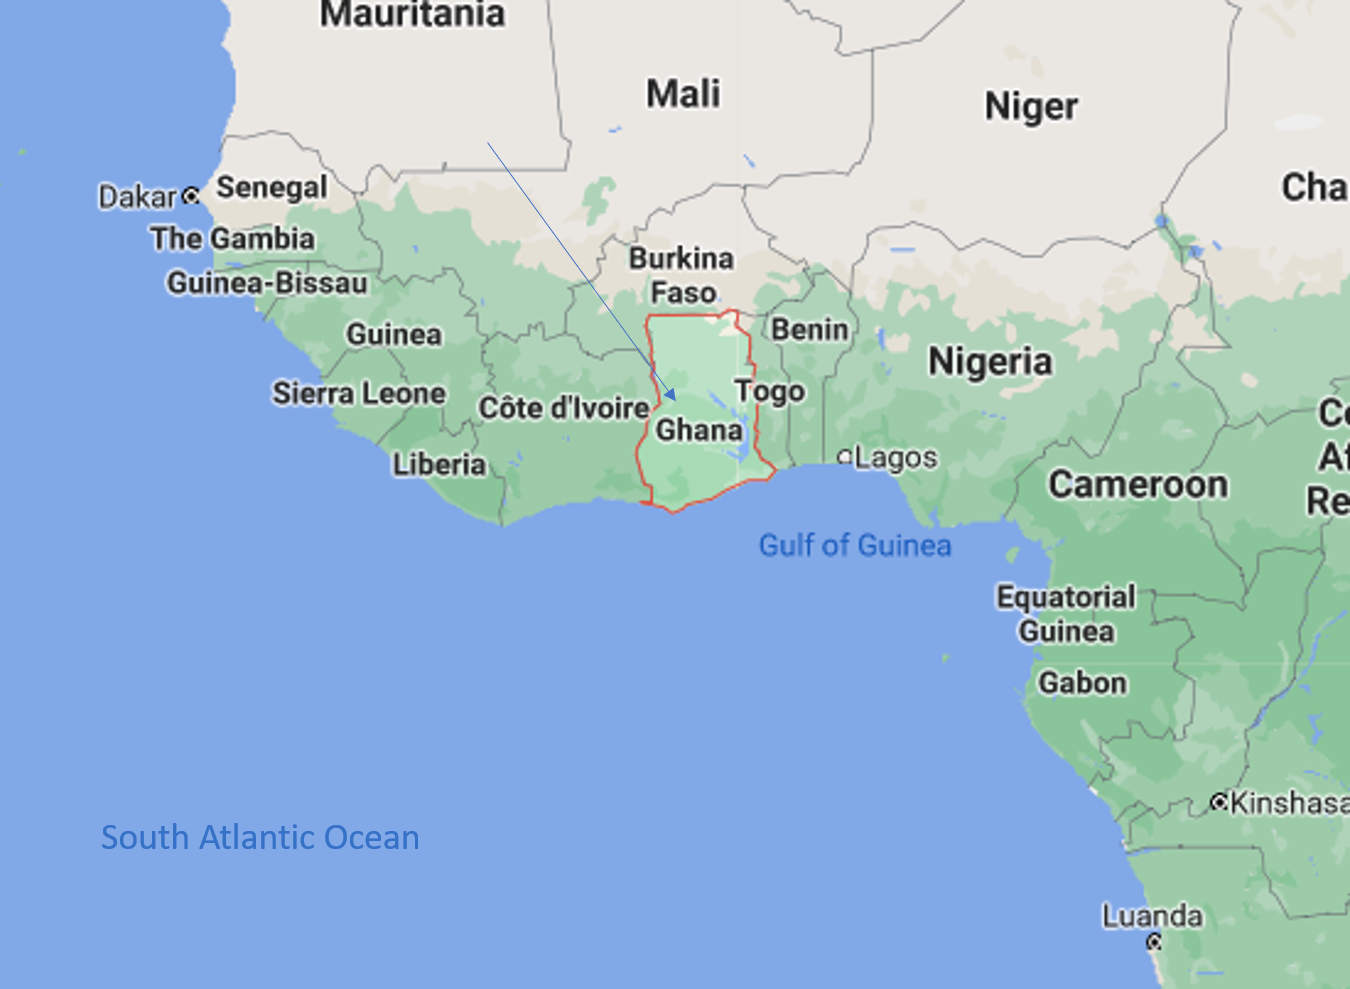 A Map of West Africa, highlighting the country of Ghana